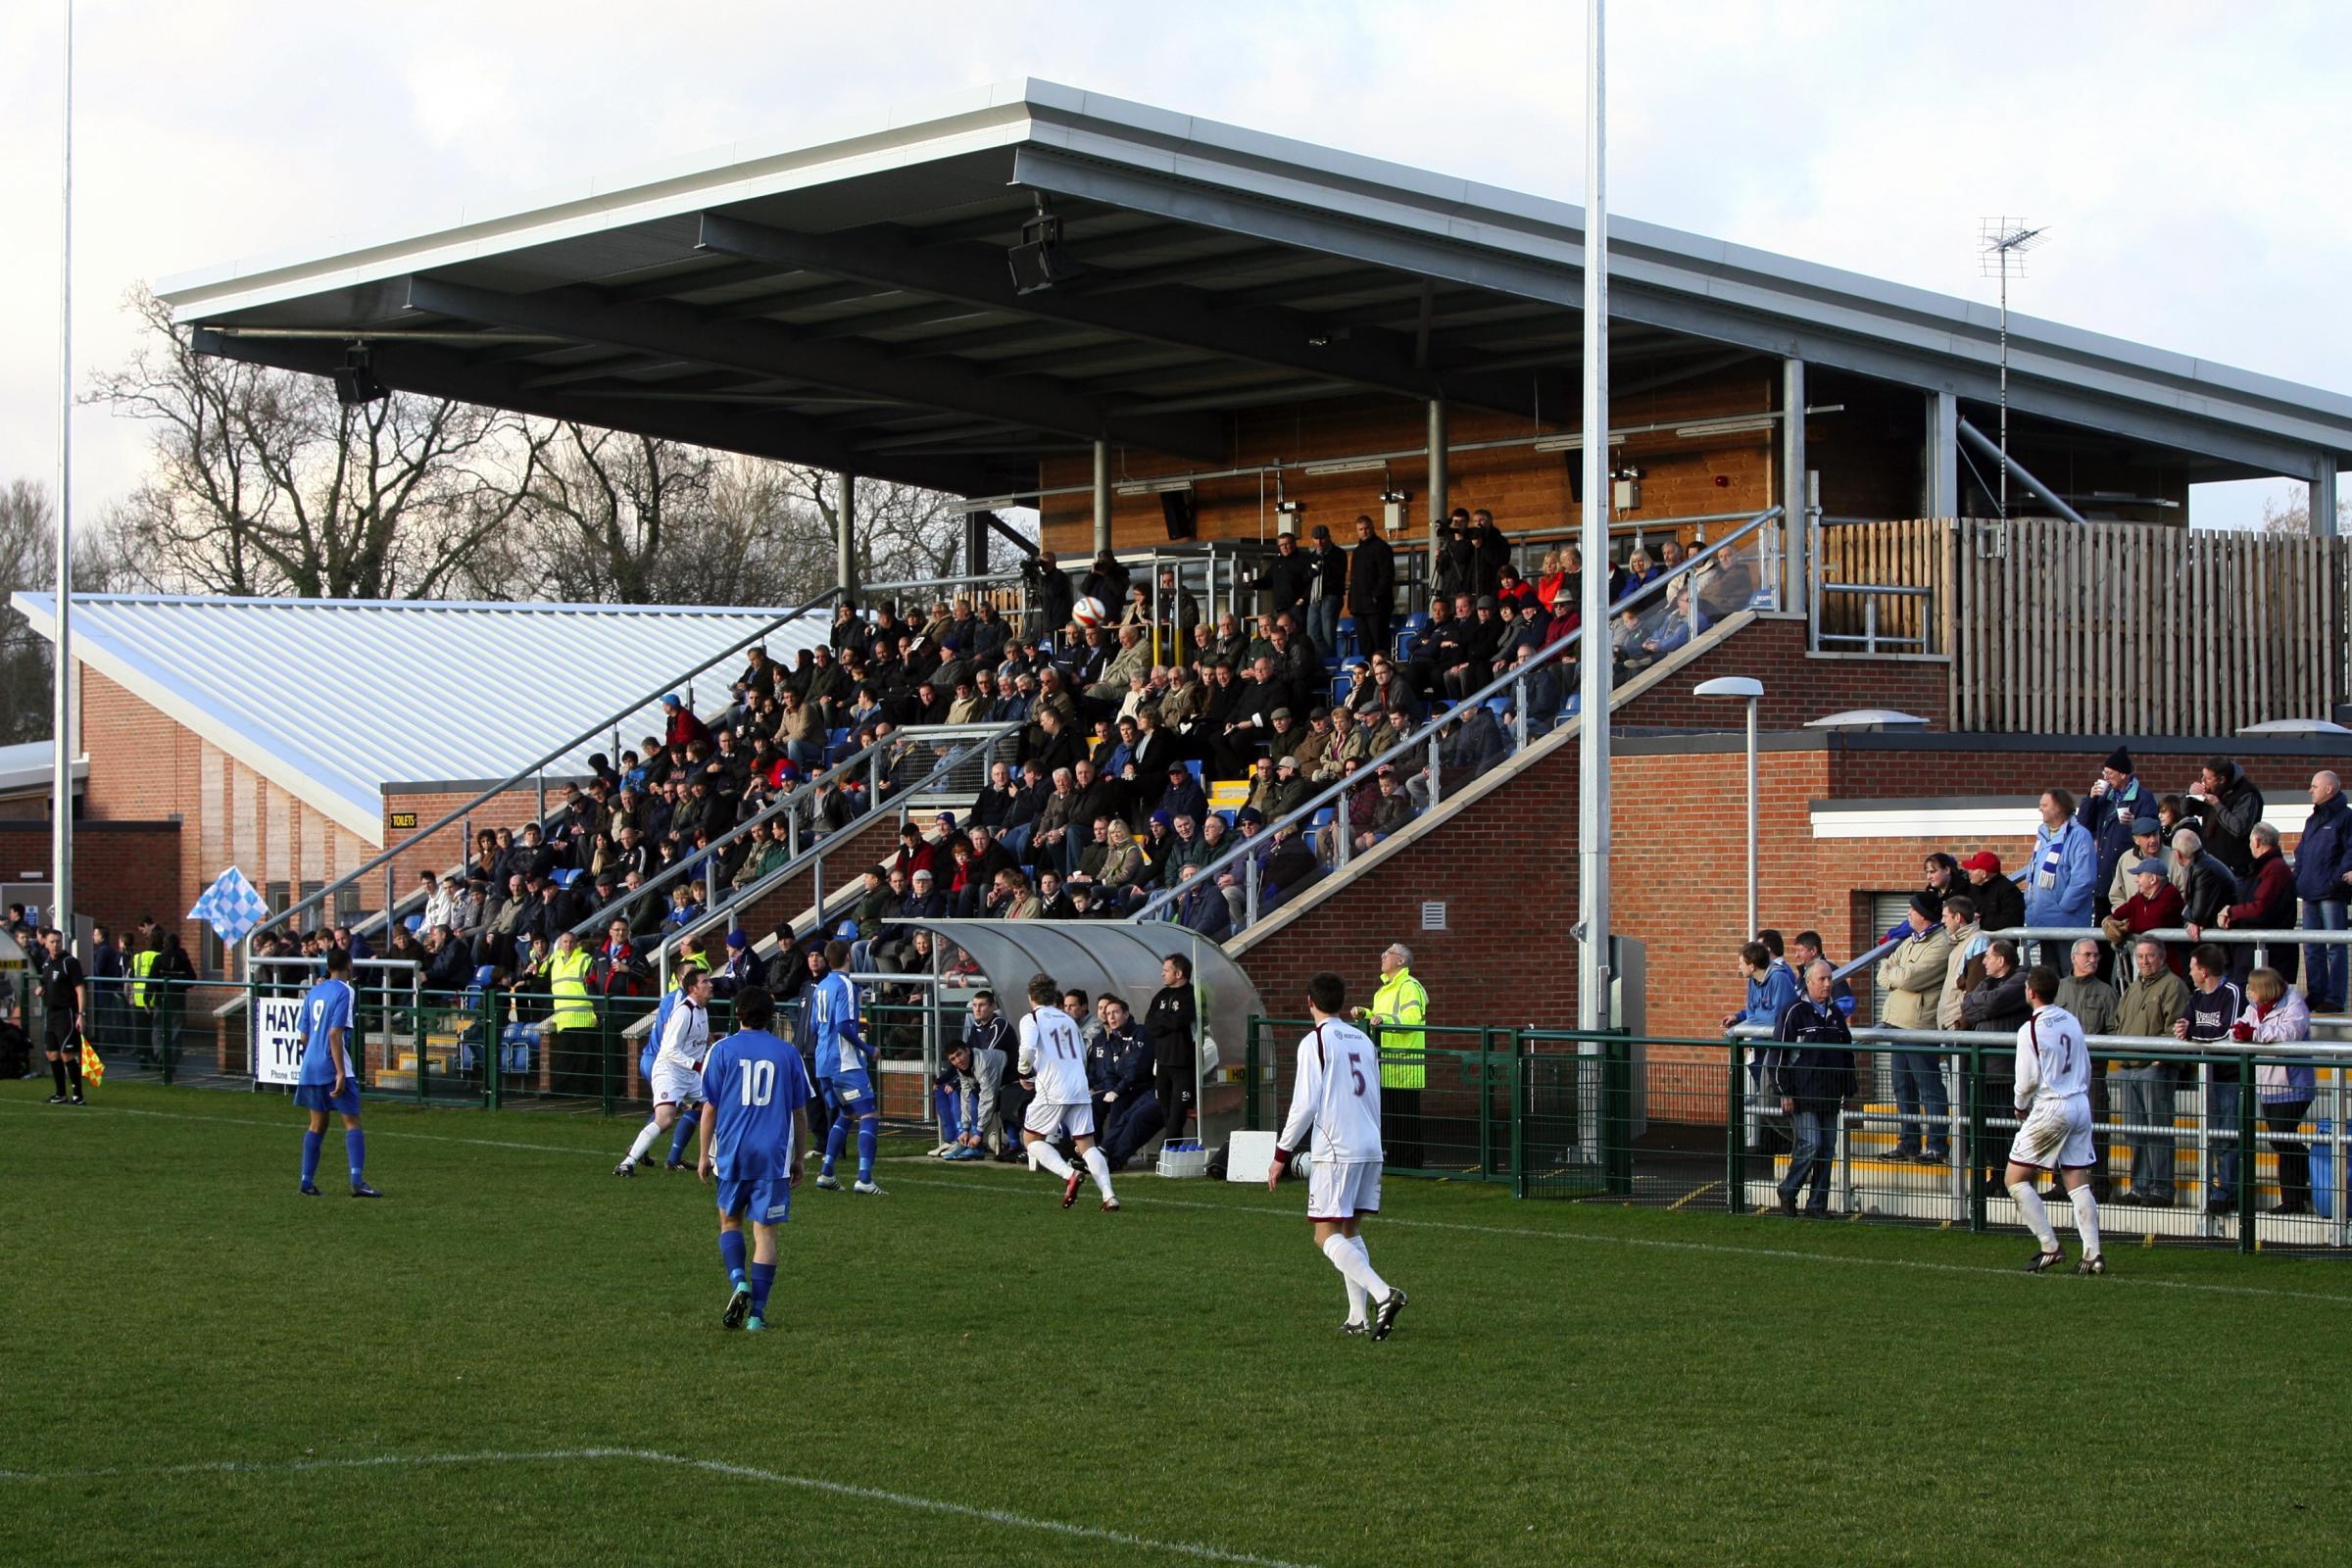 AFC Totton's  Testwood Community Stadium